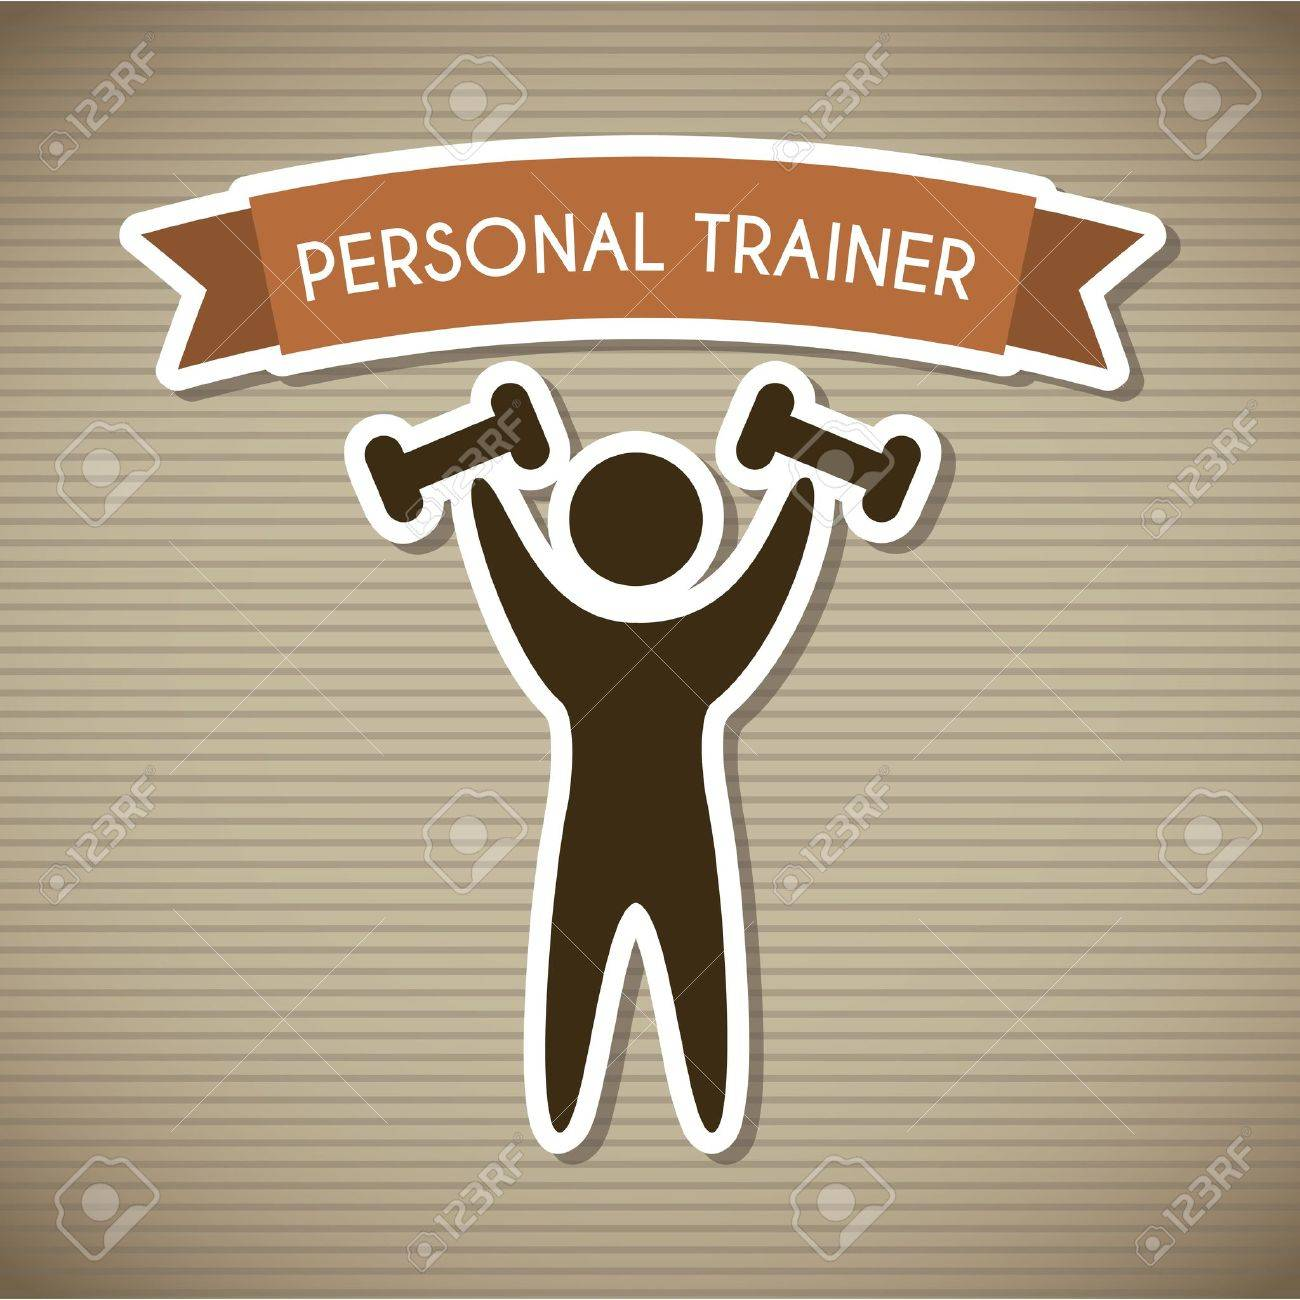 personal trainer over brown background. vector illustration Stock Vector - 19625716